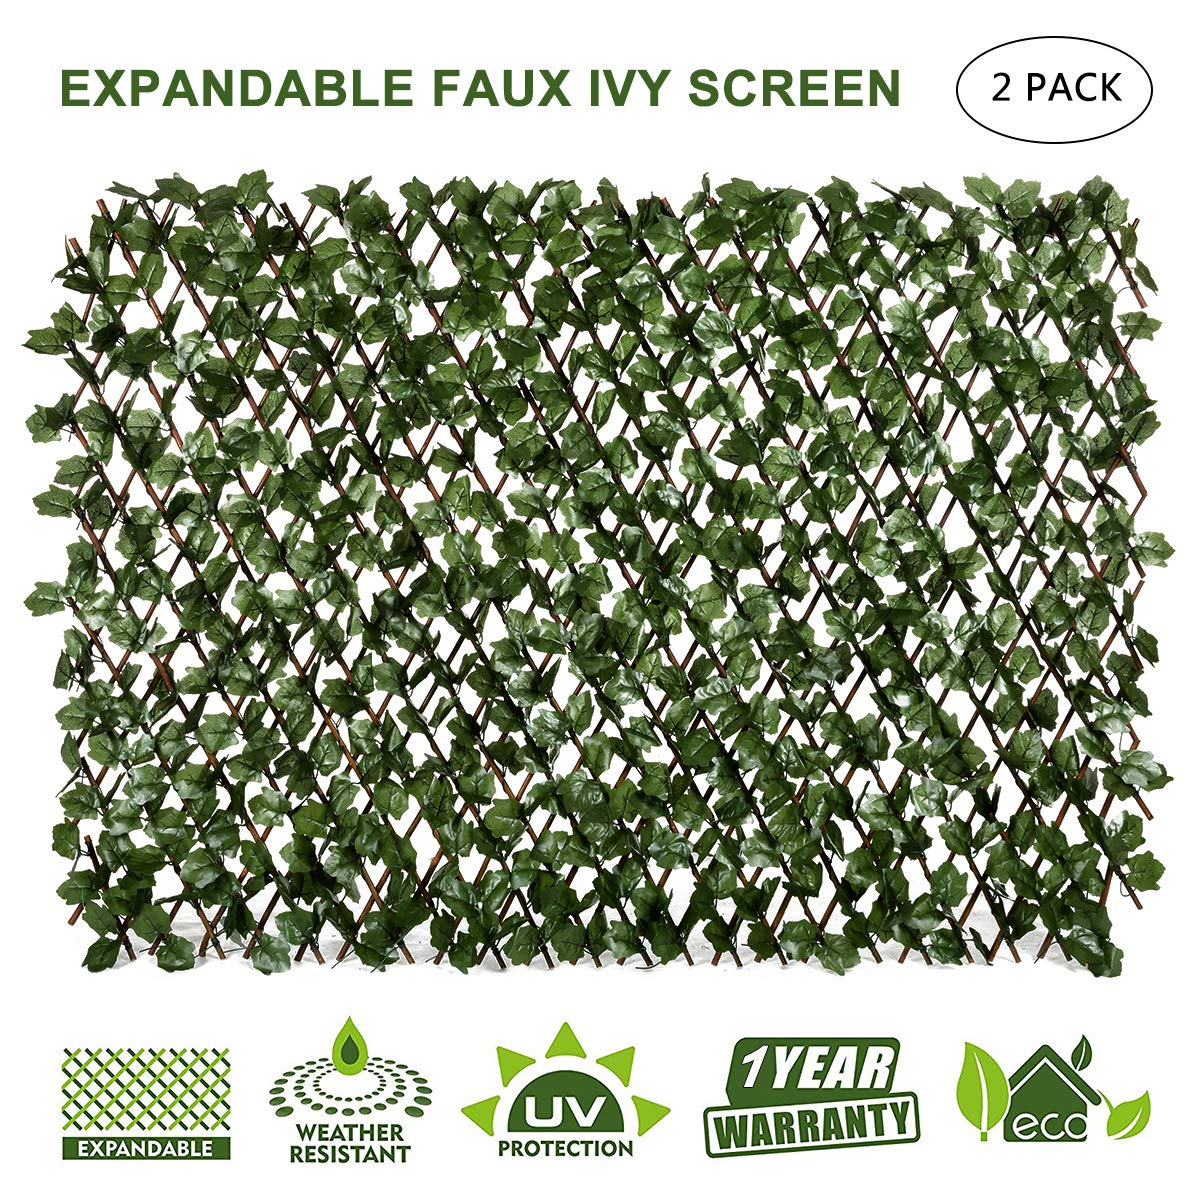 DOEWORKS Expandable Trellis Fence, Willow Faux Artificial Leaf Ivy Privacy Fence Screen for Backdrop Garden Backyard Home Decorations - 2PACK